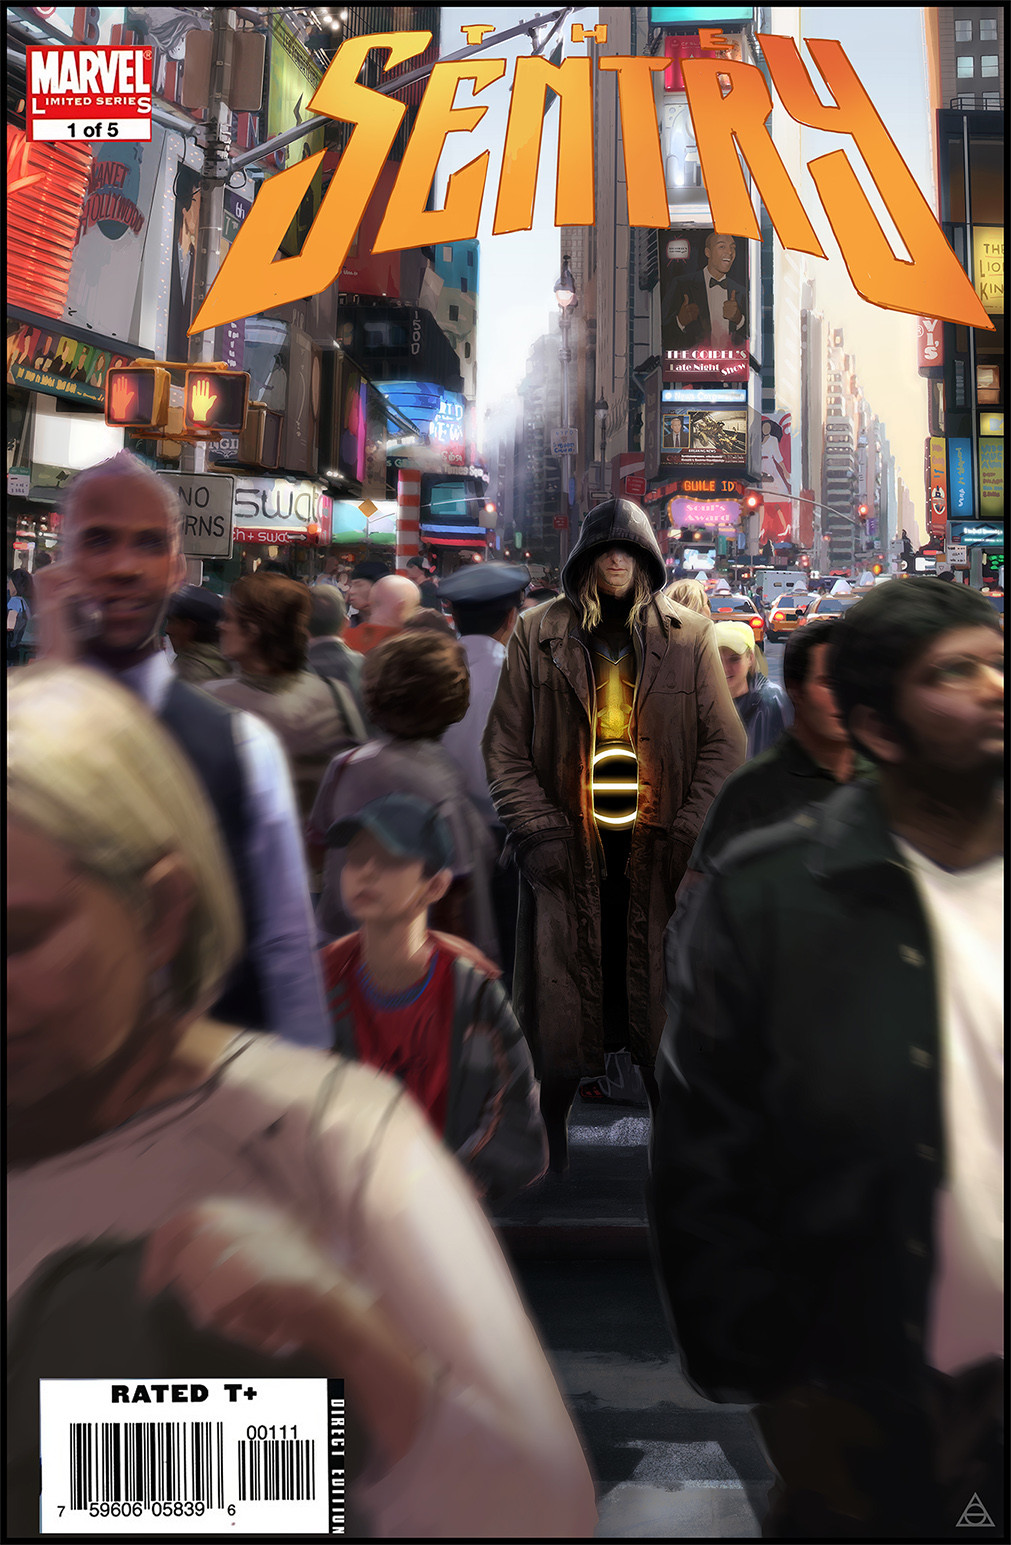 Gary jamroz palma false marvel cover sentry times square o